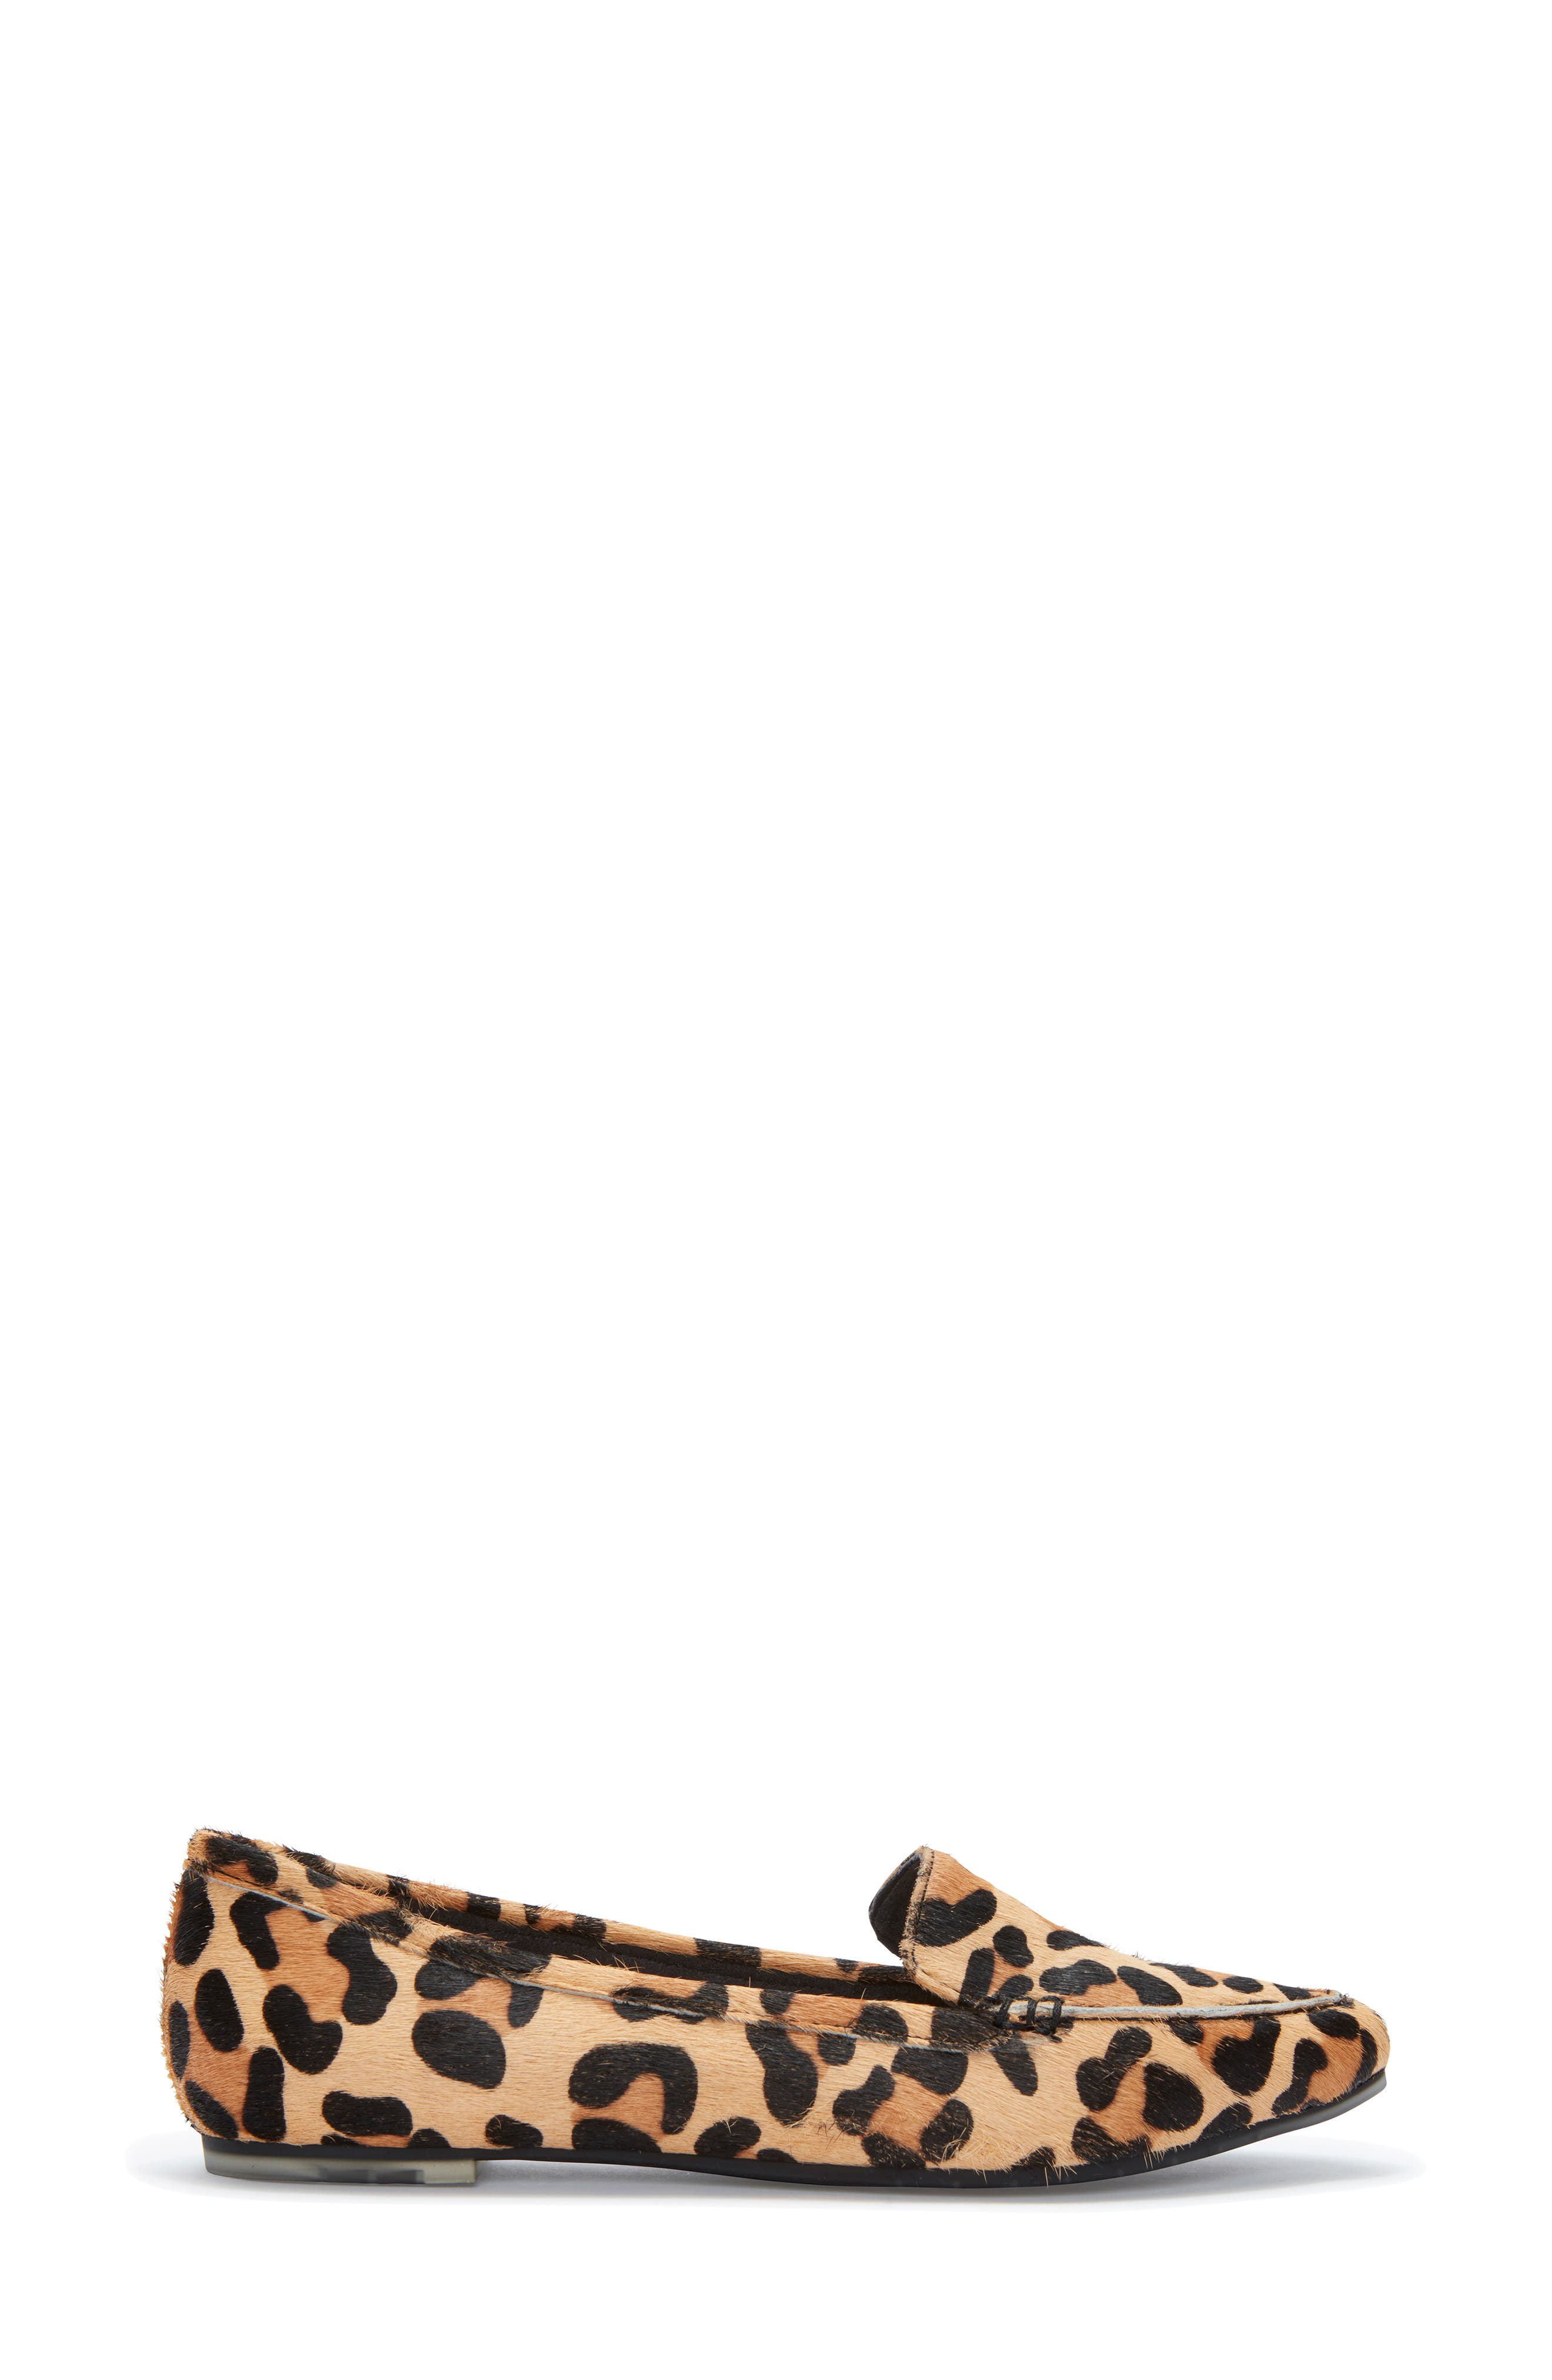 ME TOO, Audra Genuine Calf Hair Loafer Flat, Alternate thumbnail 3, color, TAN JAGUAR CALF HAIR